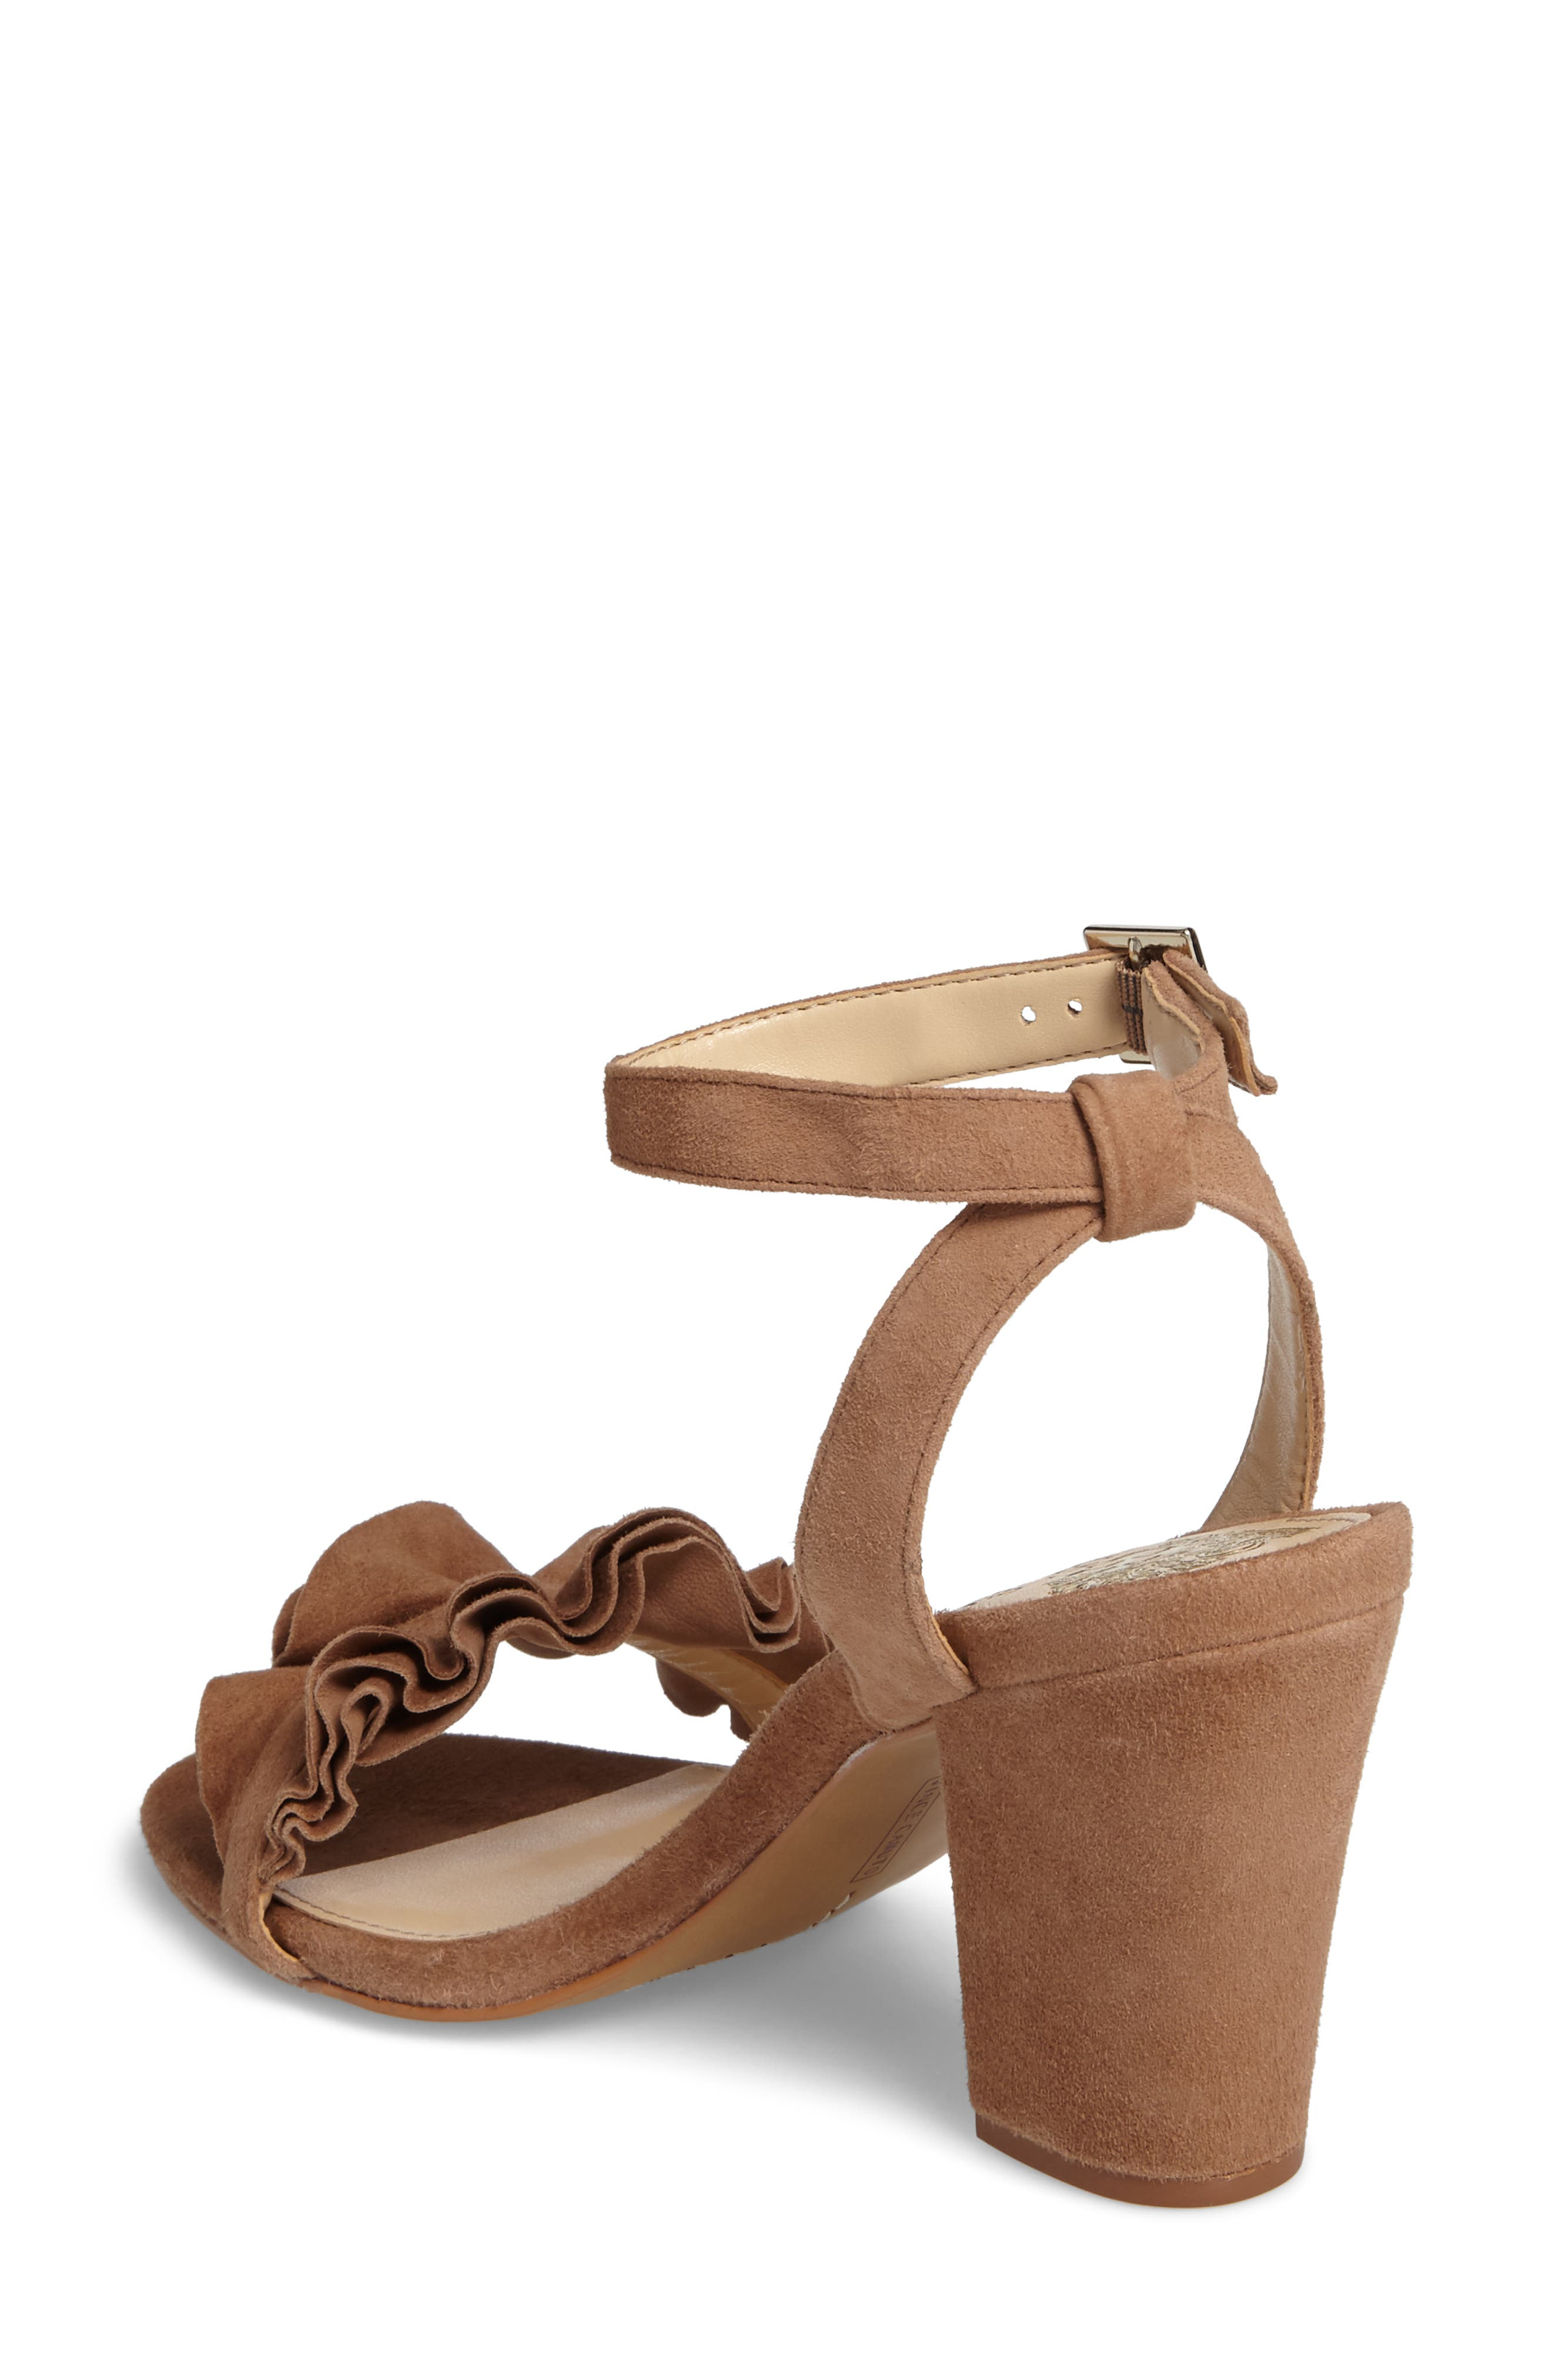 Vinta Sandal,                             Alternate thumbnail 2, color,                             Amendoa Suede